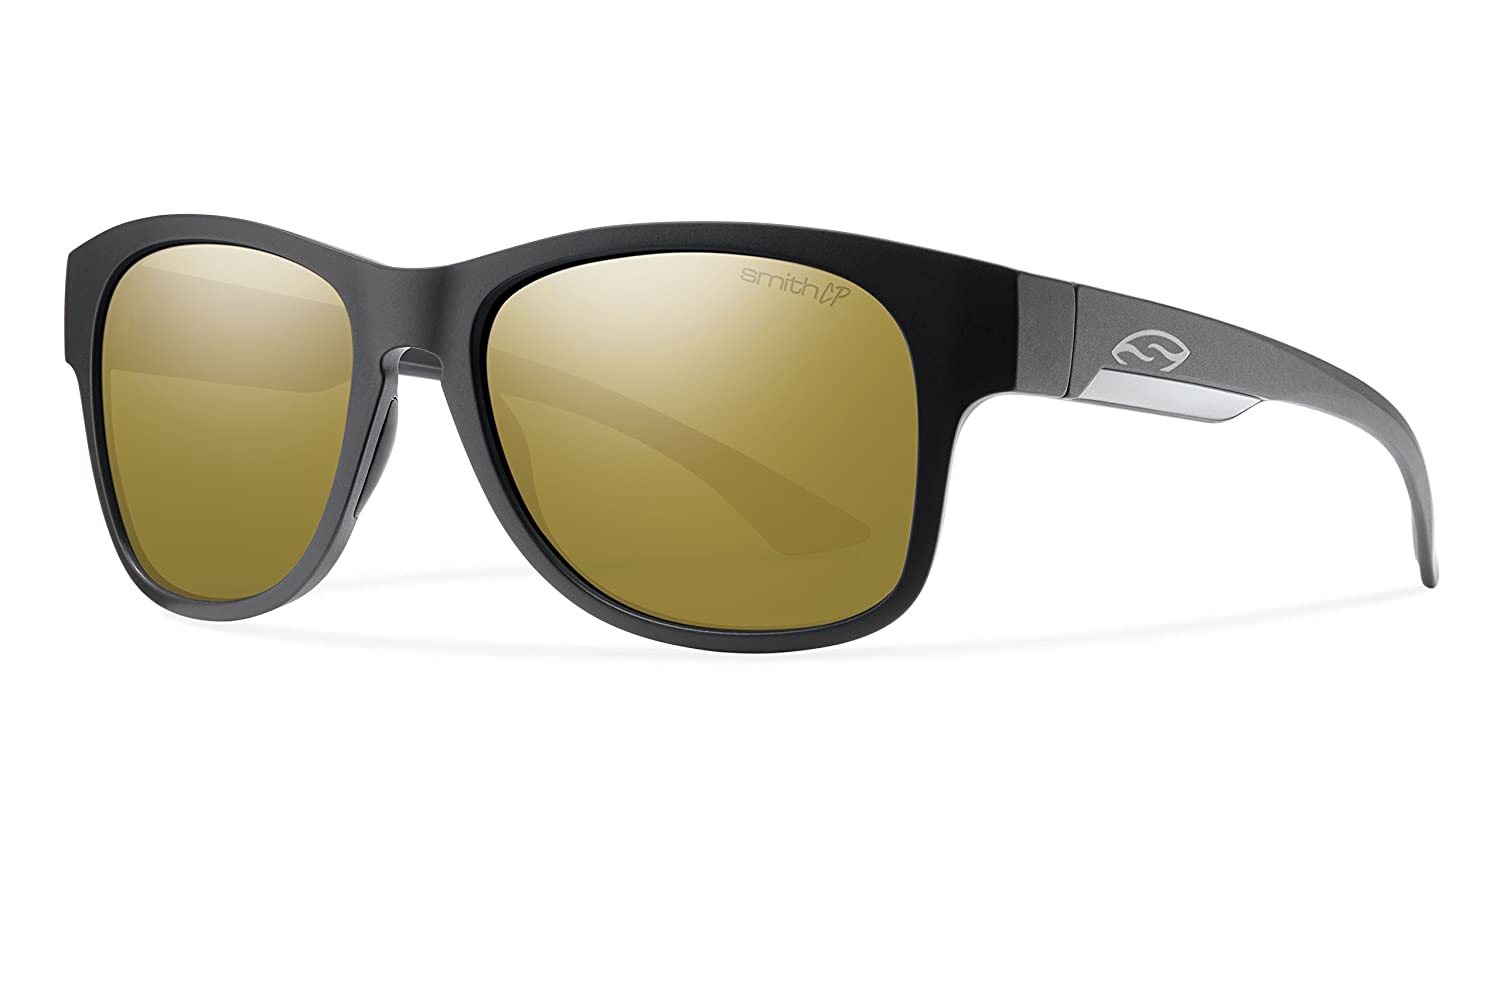 Smith Optics Wayward Unisex 54mm Round Sunglasses